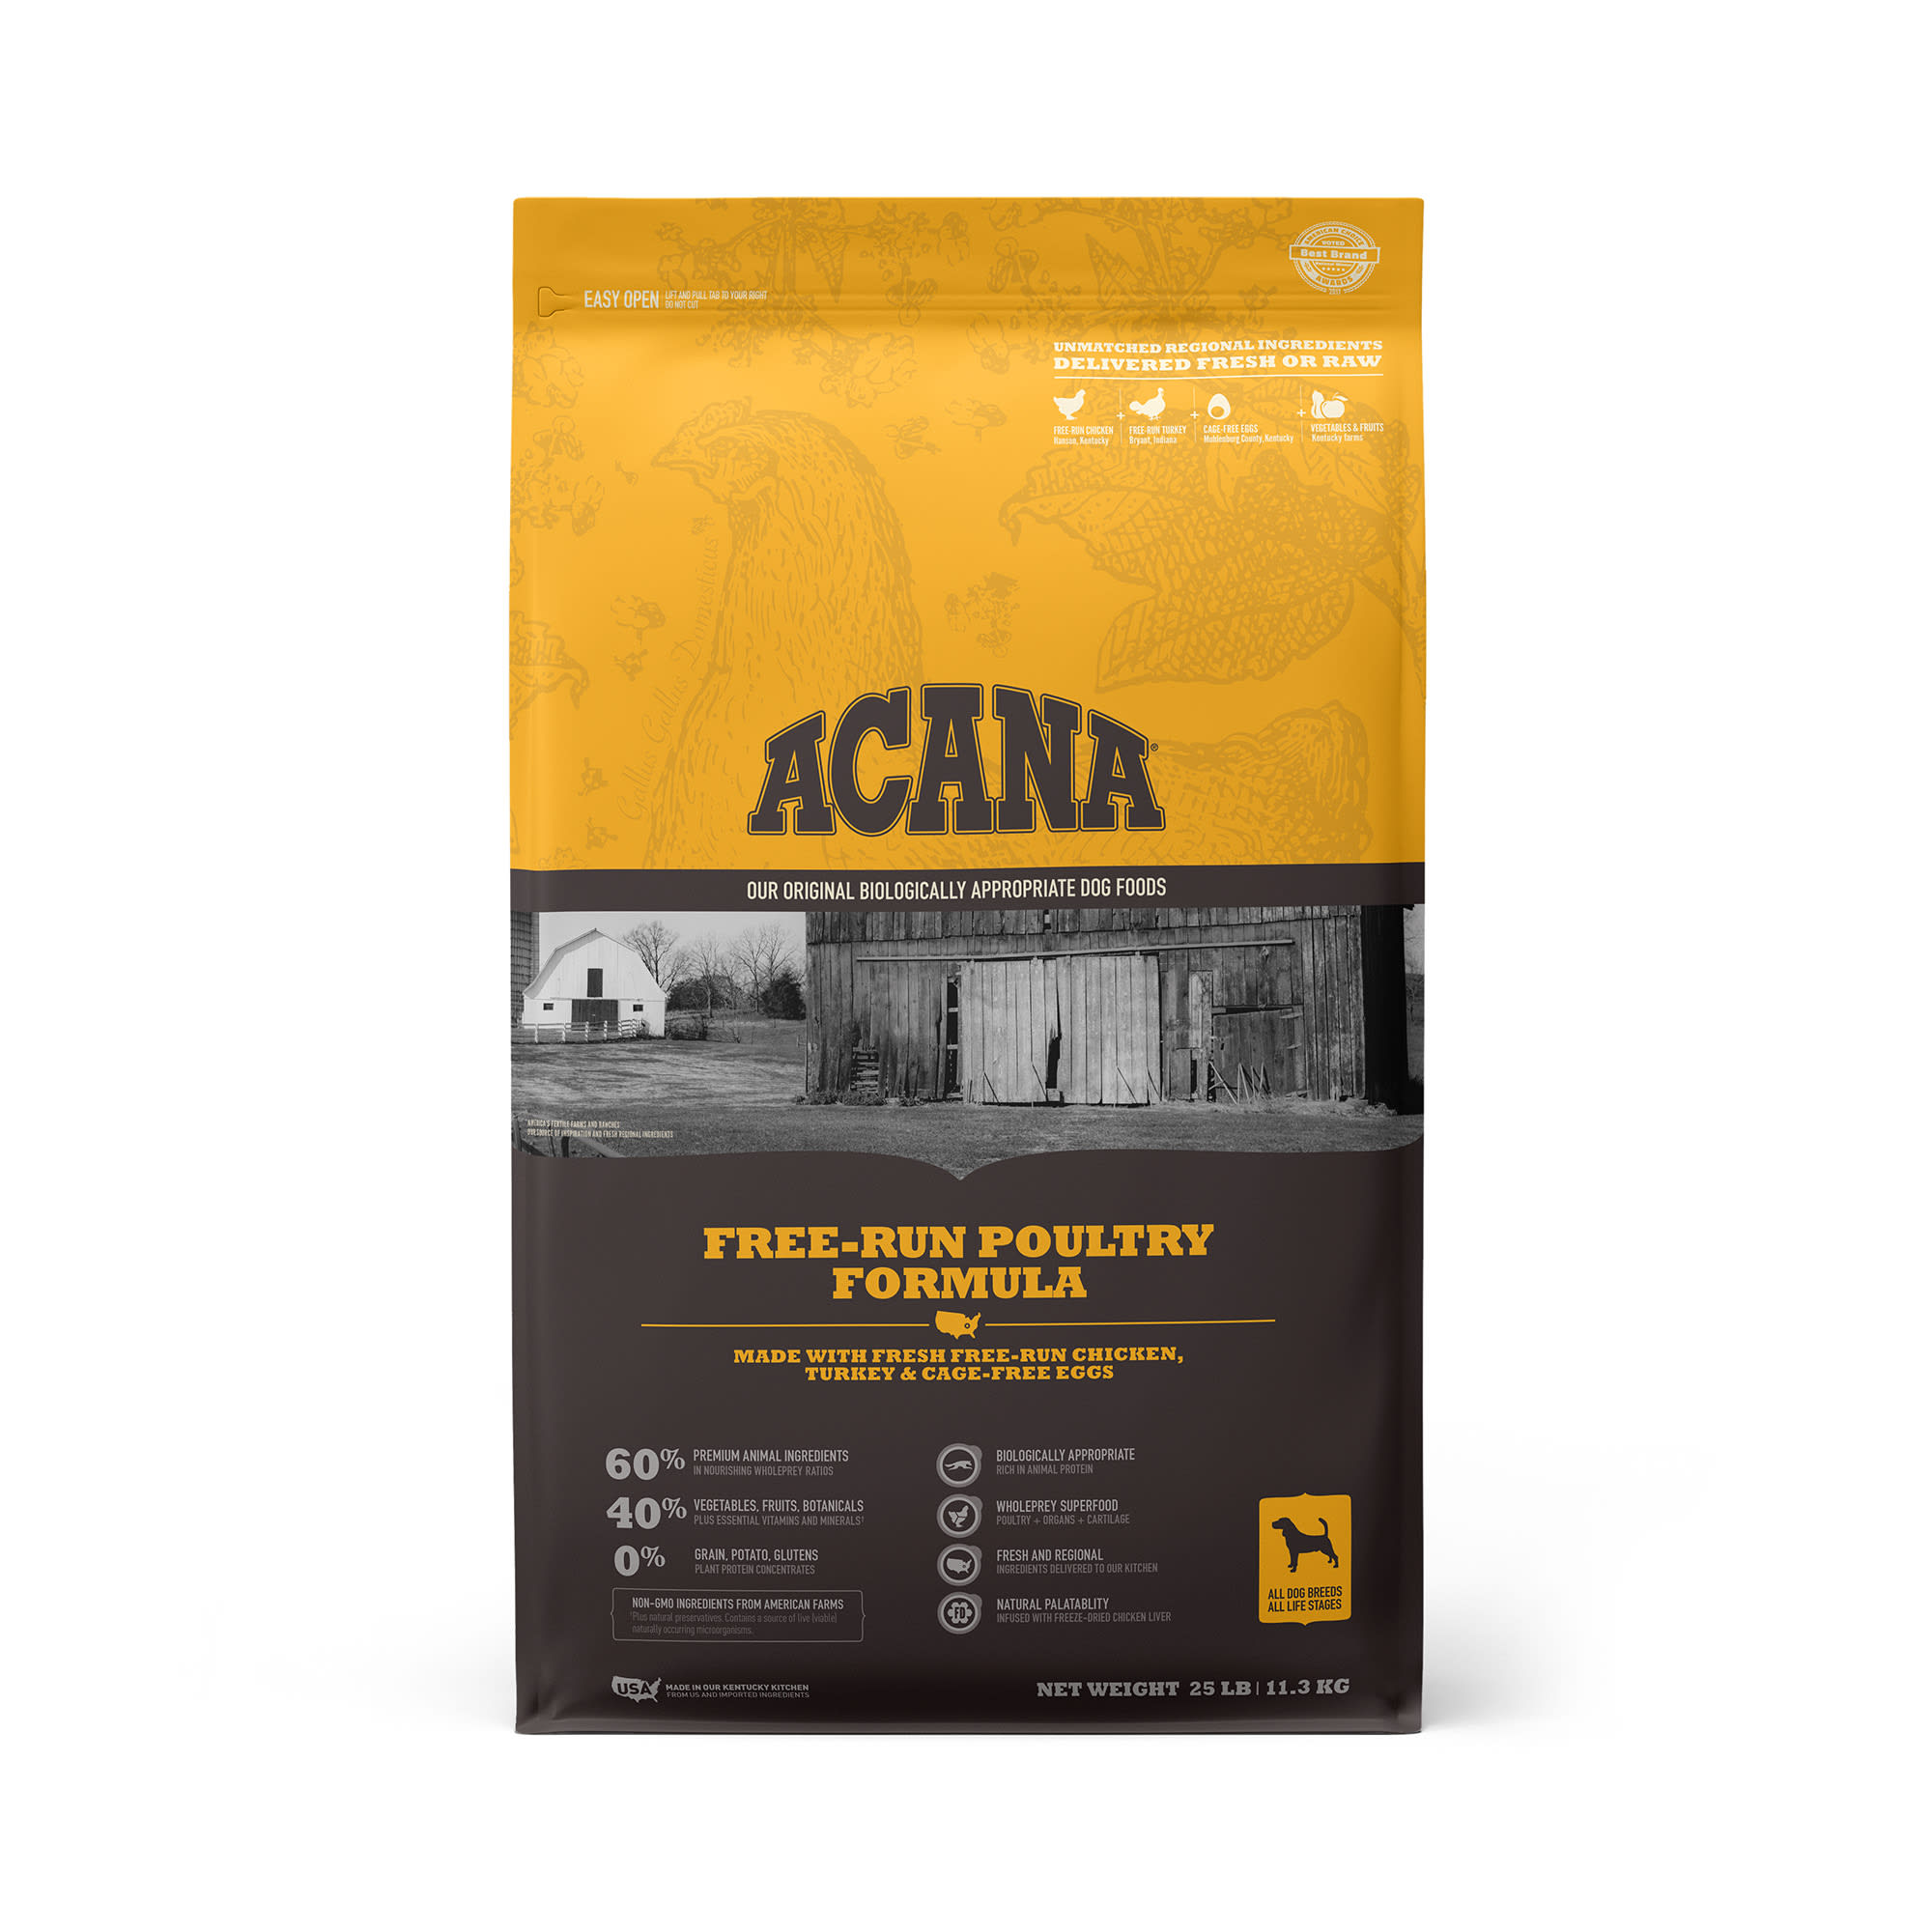 ACANA Grain-Free Free Run Poultry Chicken and Turkey and Cage-free Eggs Dry Dog Food, 25 lbs.